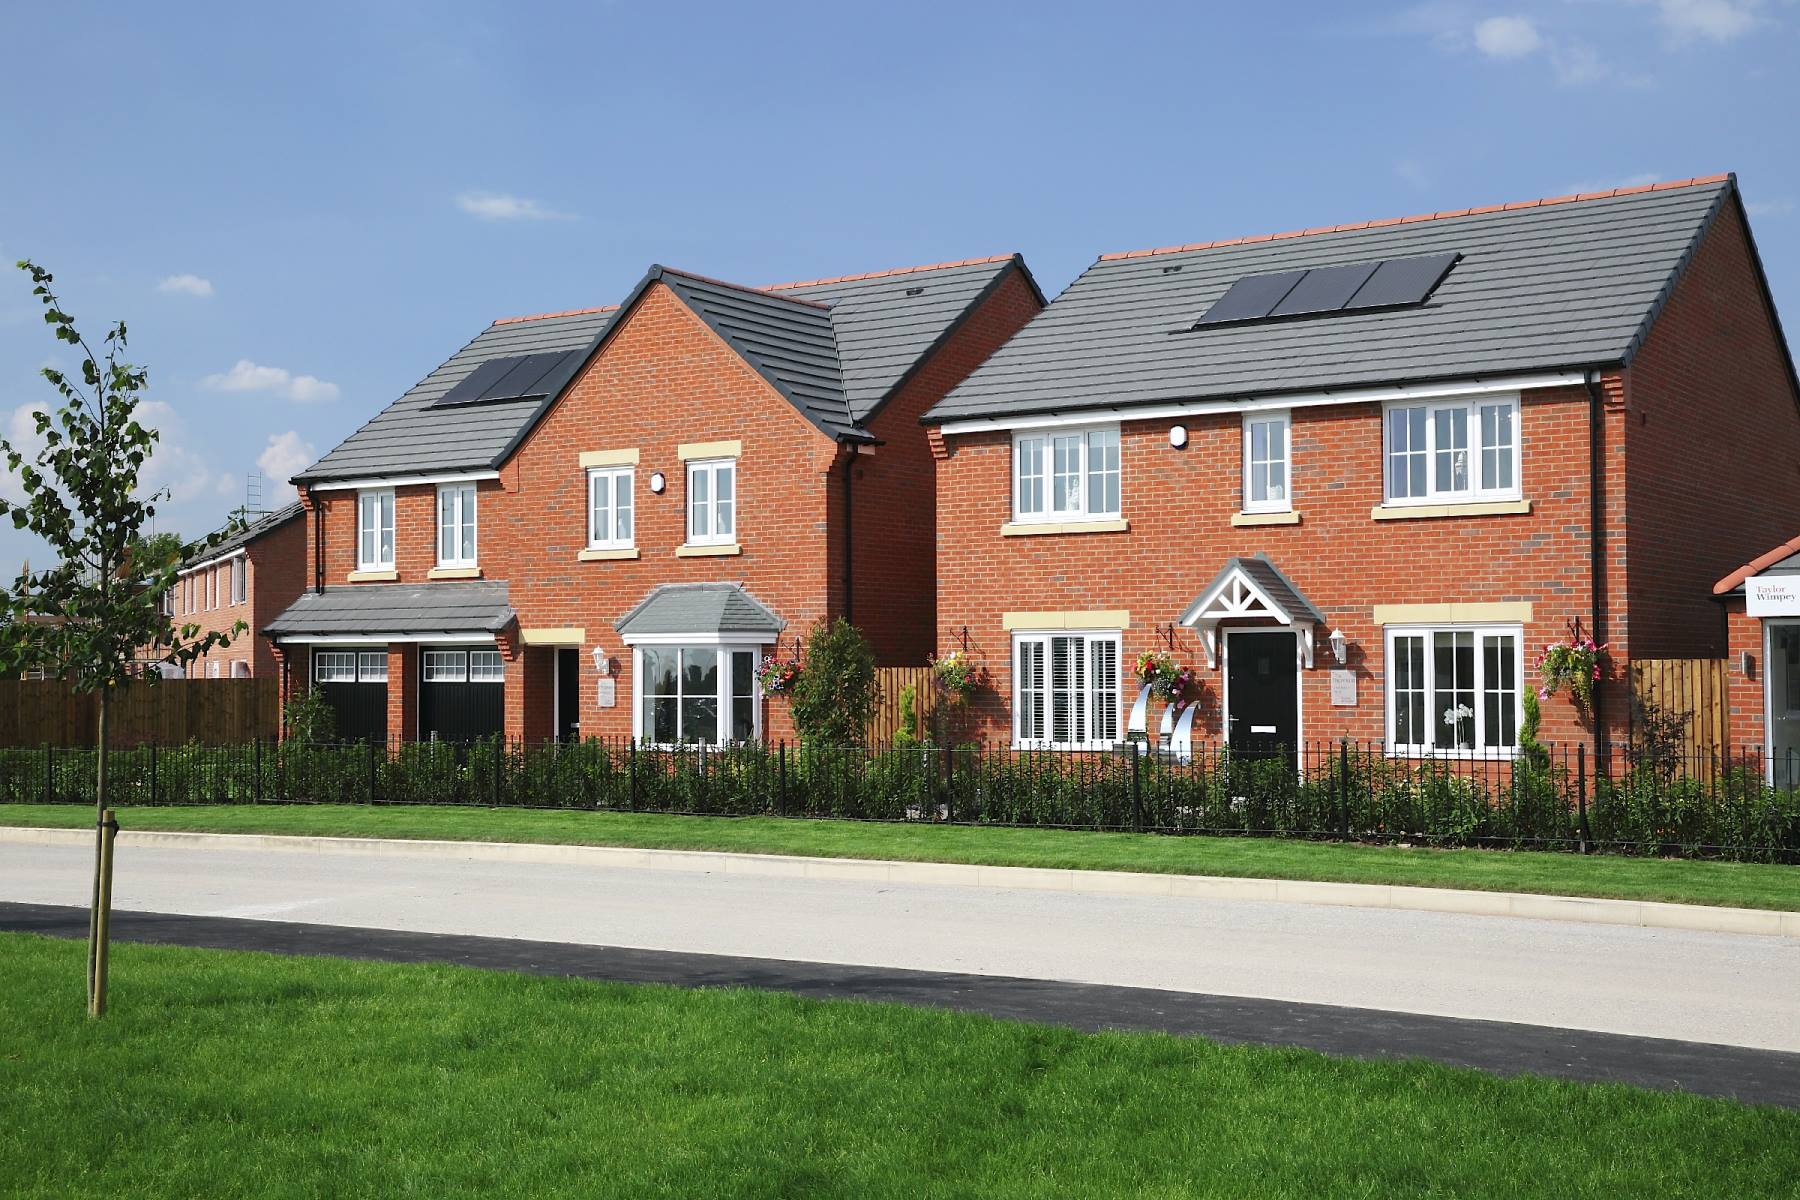 Rowan Manor show homes